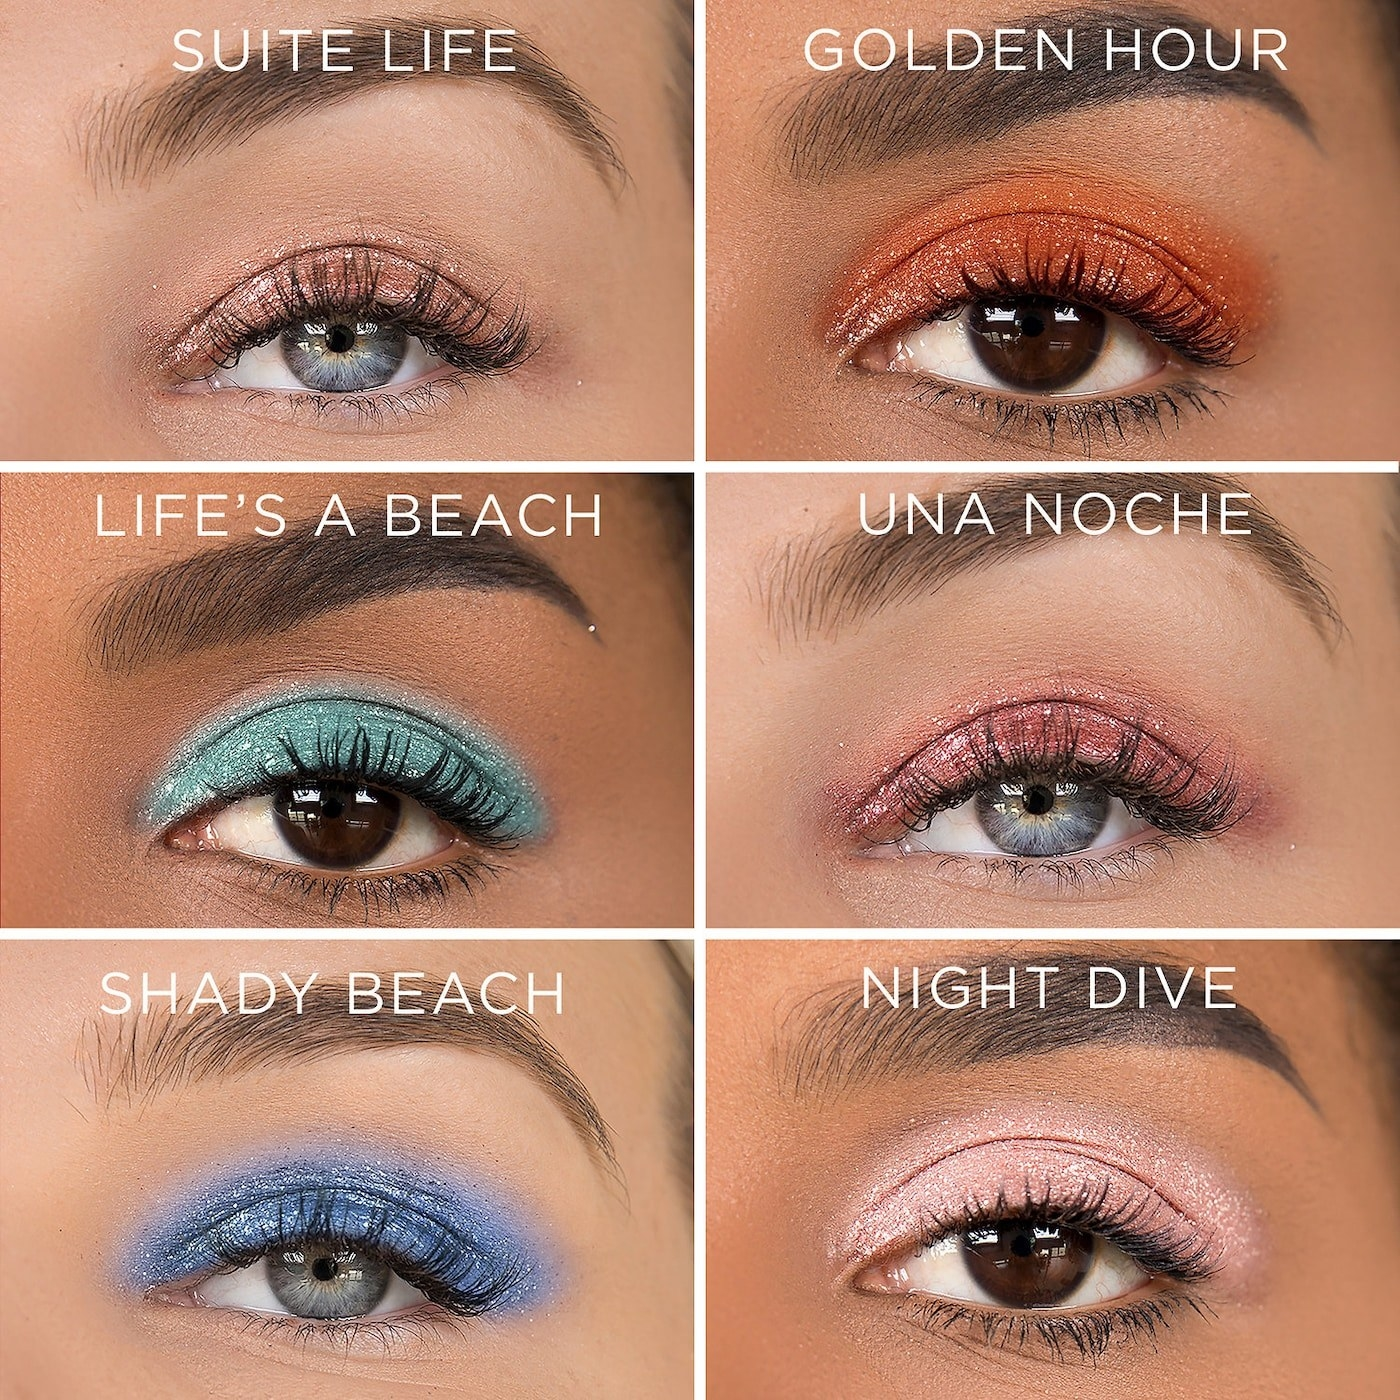 Models wearing different shades from the palette